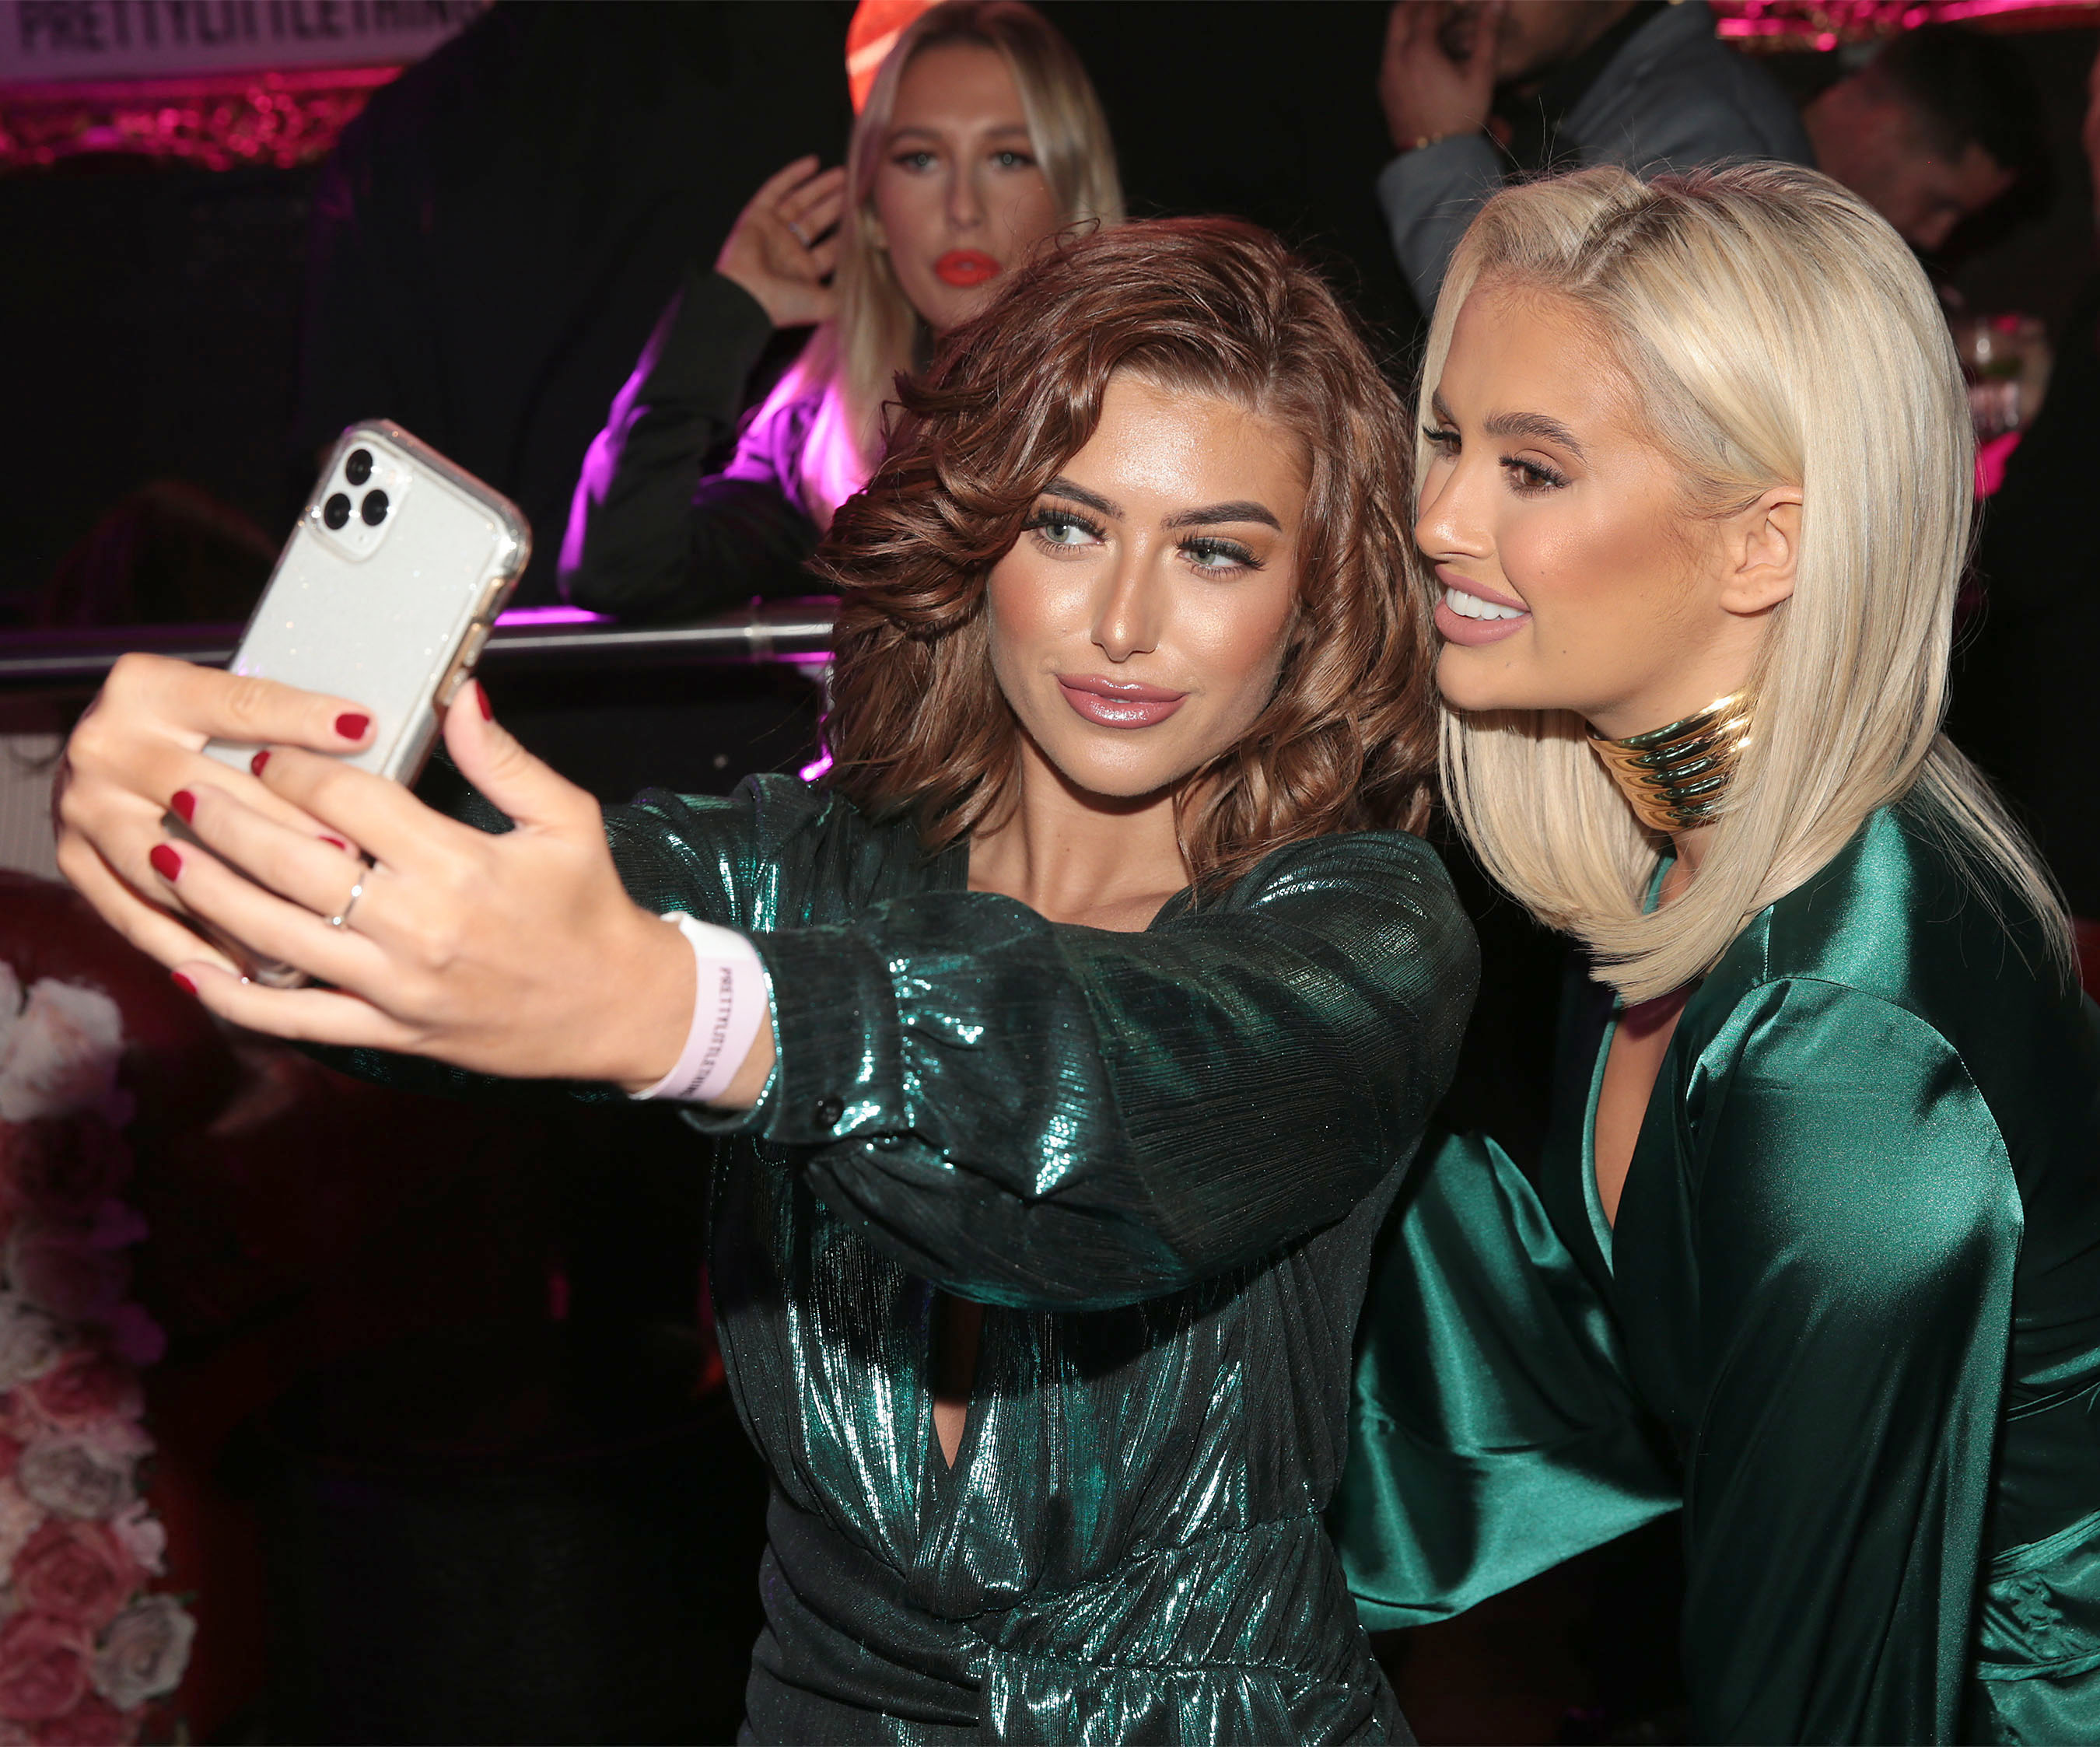 Chloe Ormond and Molly Mae Hague in Dublin for the PrettyLittleThing launch party for Molly Mae Hague's new partywear Christmas Edit. Picture: Brian McEvoy